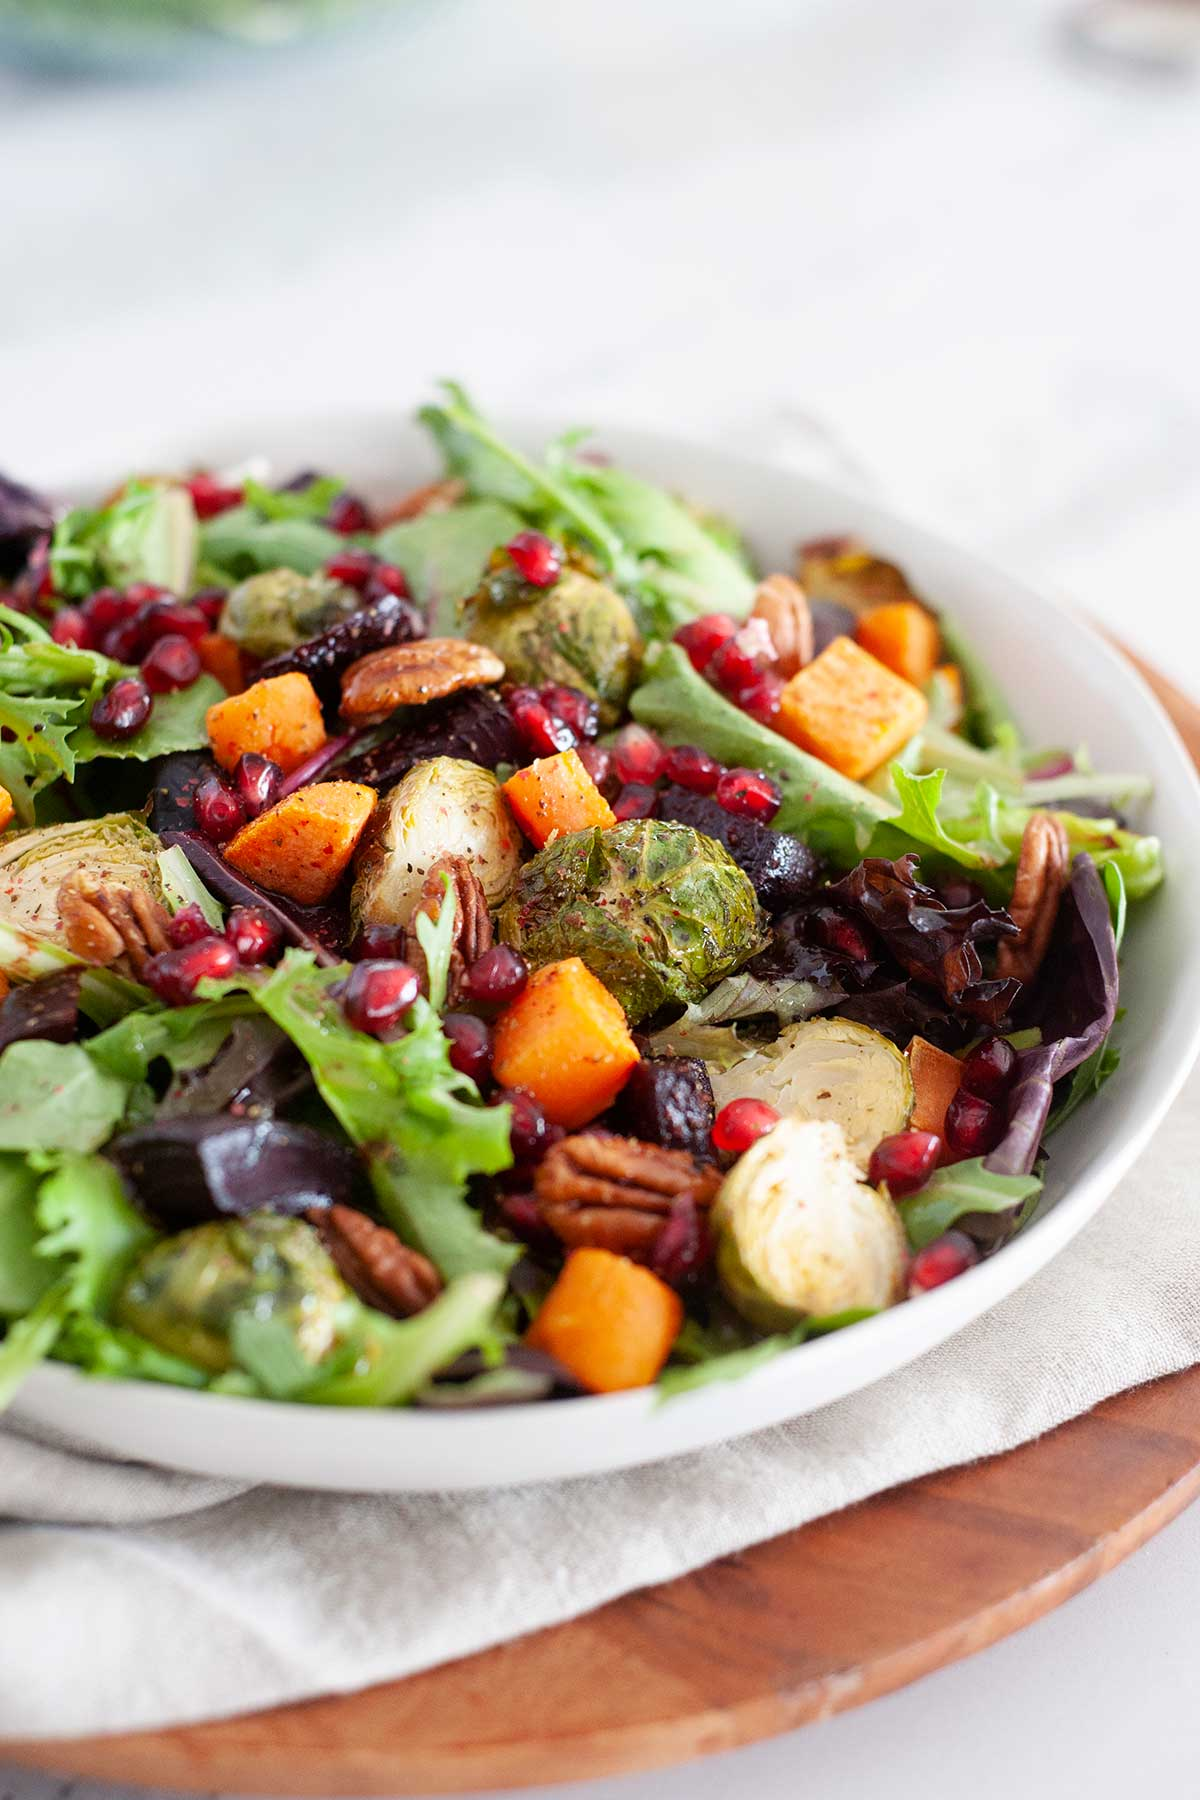 Large winter salad in a bowl